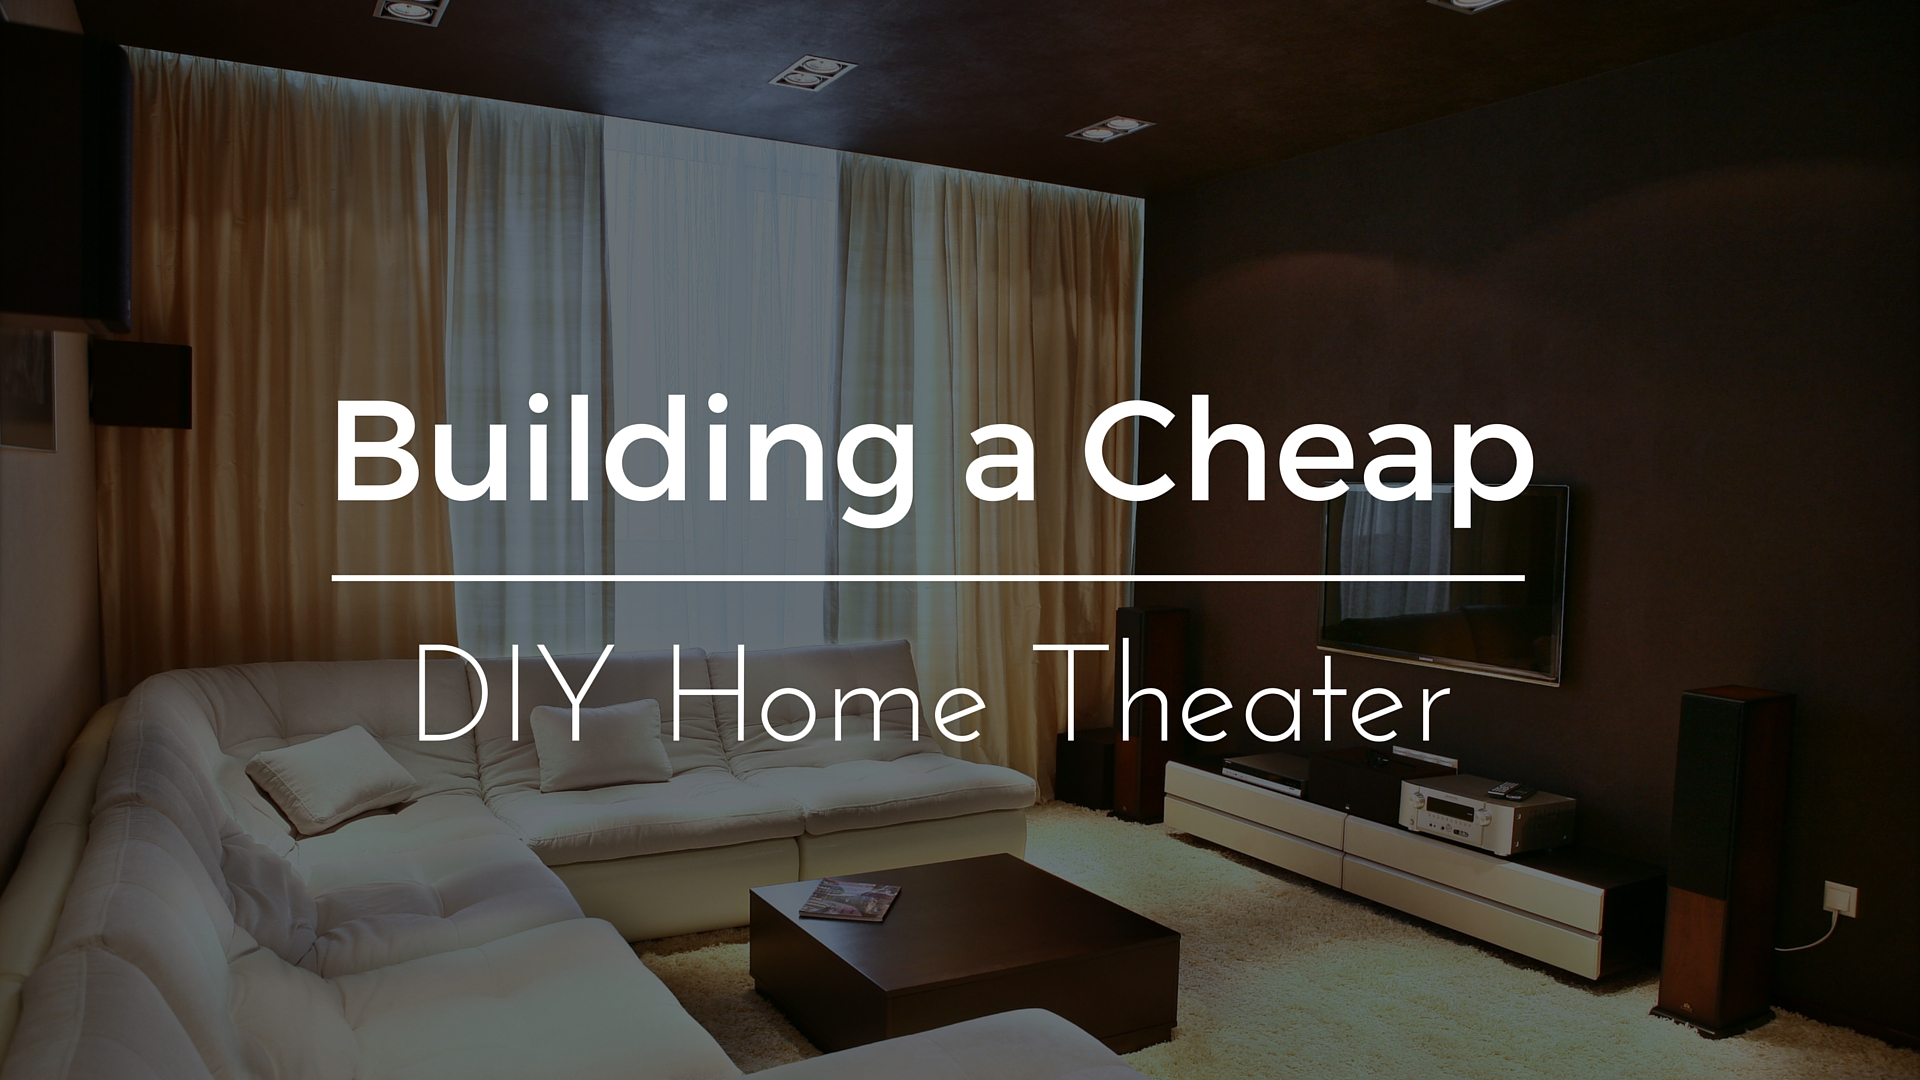 Diy Home Theater Wiring Wall Layout Introduction To Electrical Guide How Your Setup On A Low Budget Primecables Ca Blog Rh Room